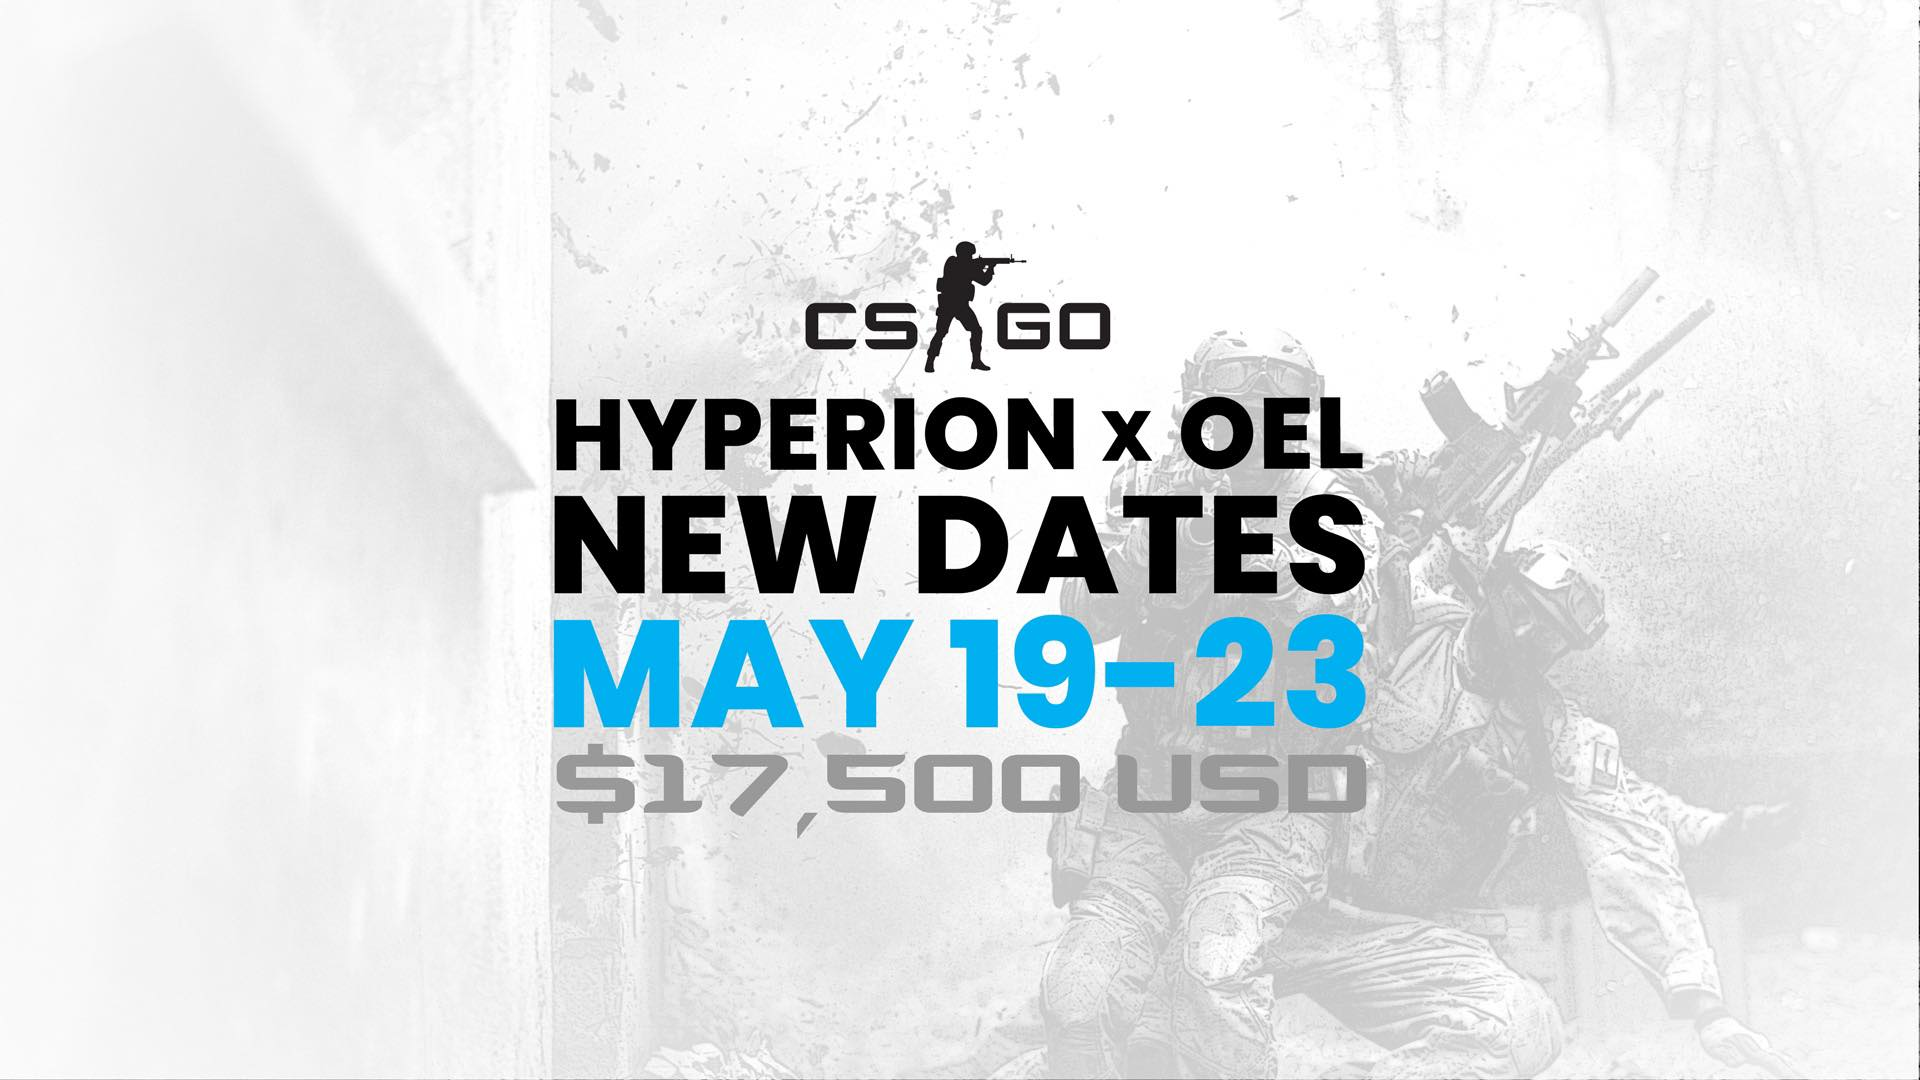 Announcing The Hyperion x OEL CS:GO Launch Date